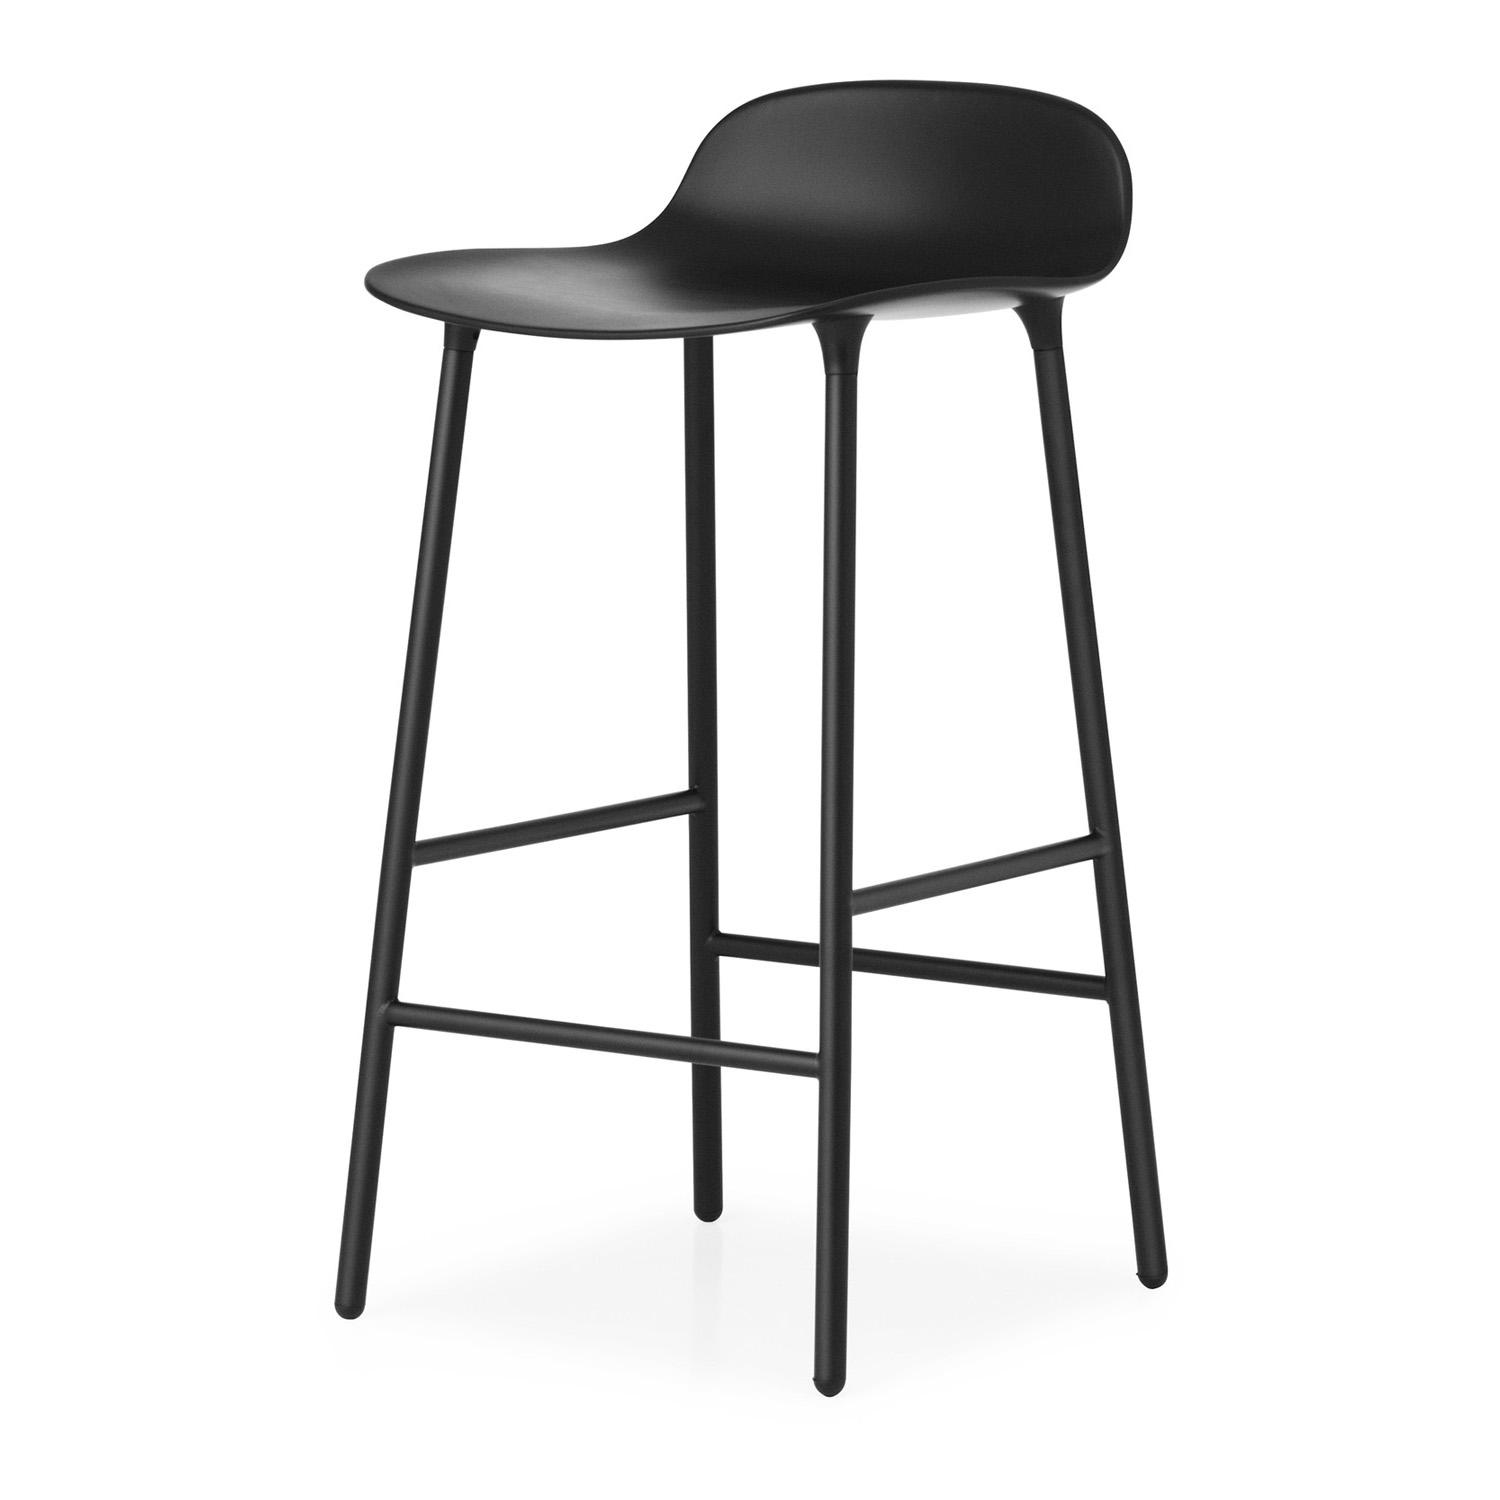 Marvelous Form Barstool 65 Cm Metal Base Creativecarmelina Interior Chair Design Creativecarmelinacom